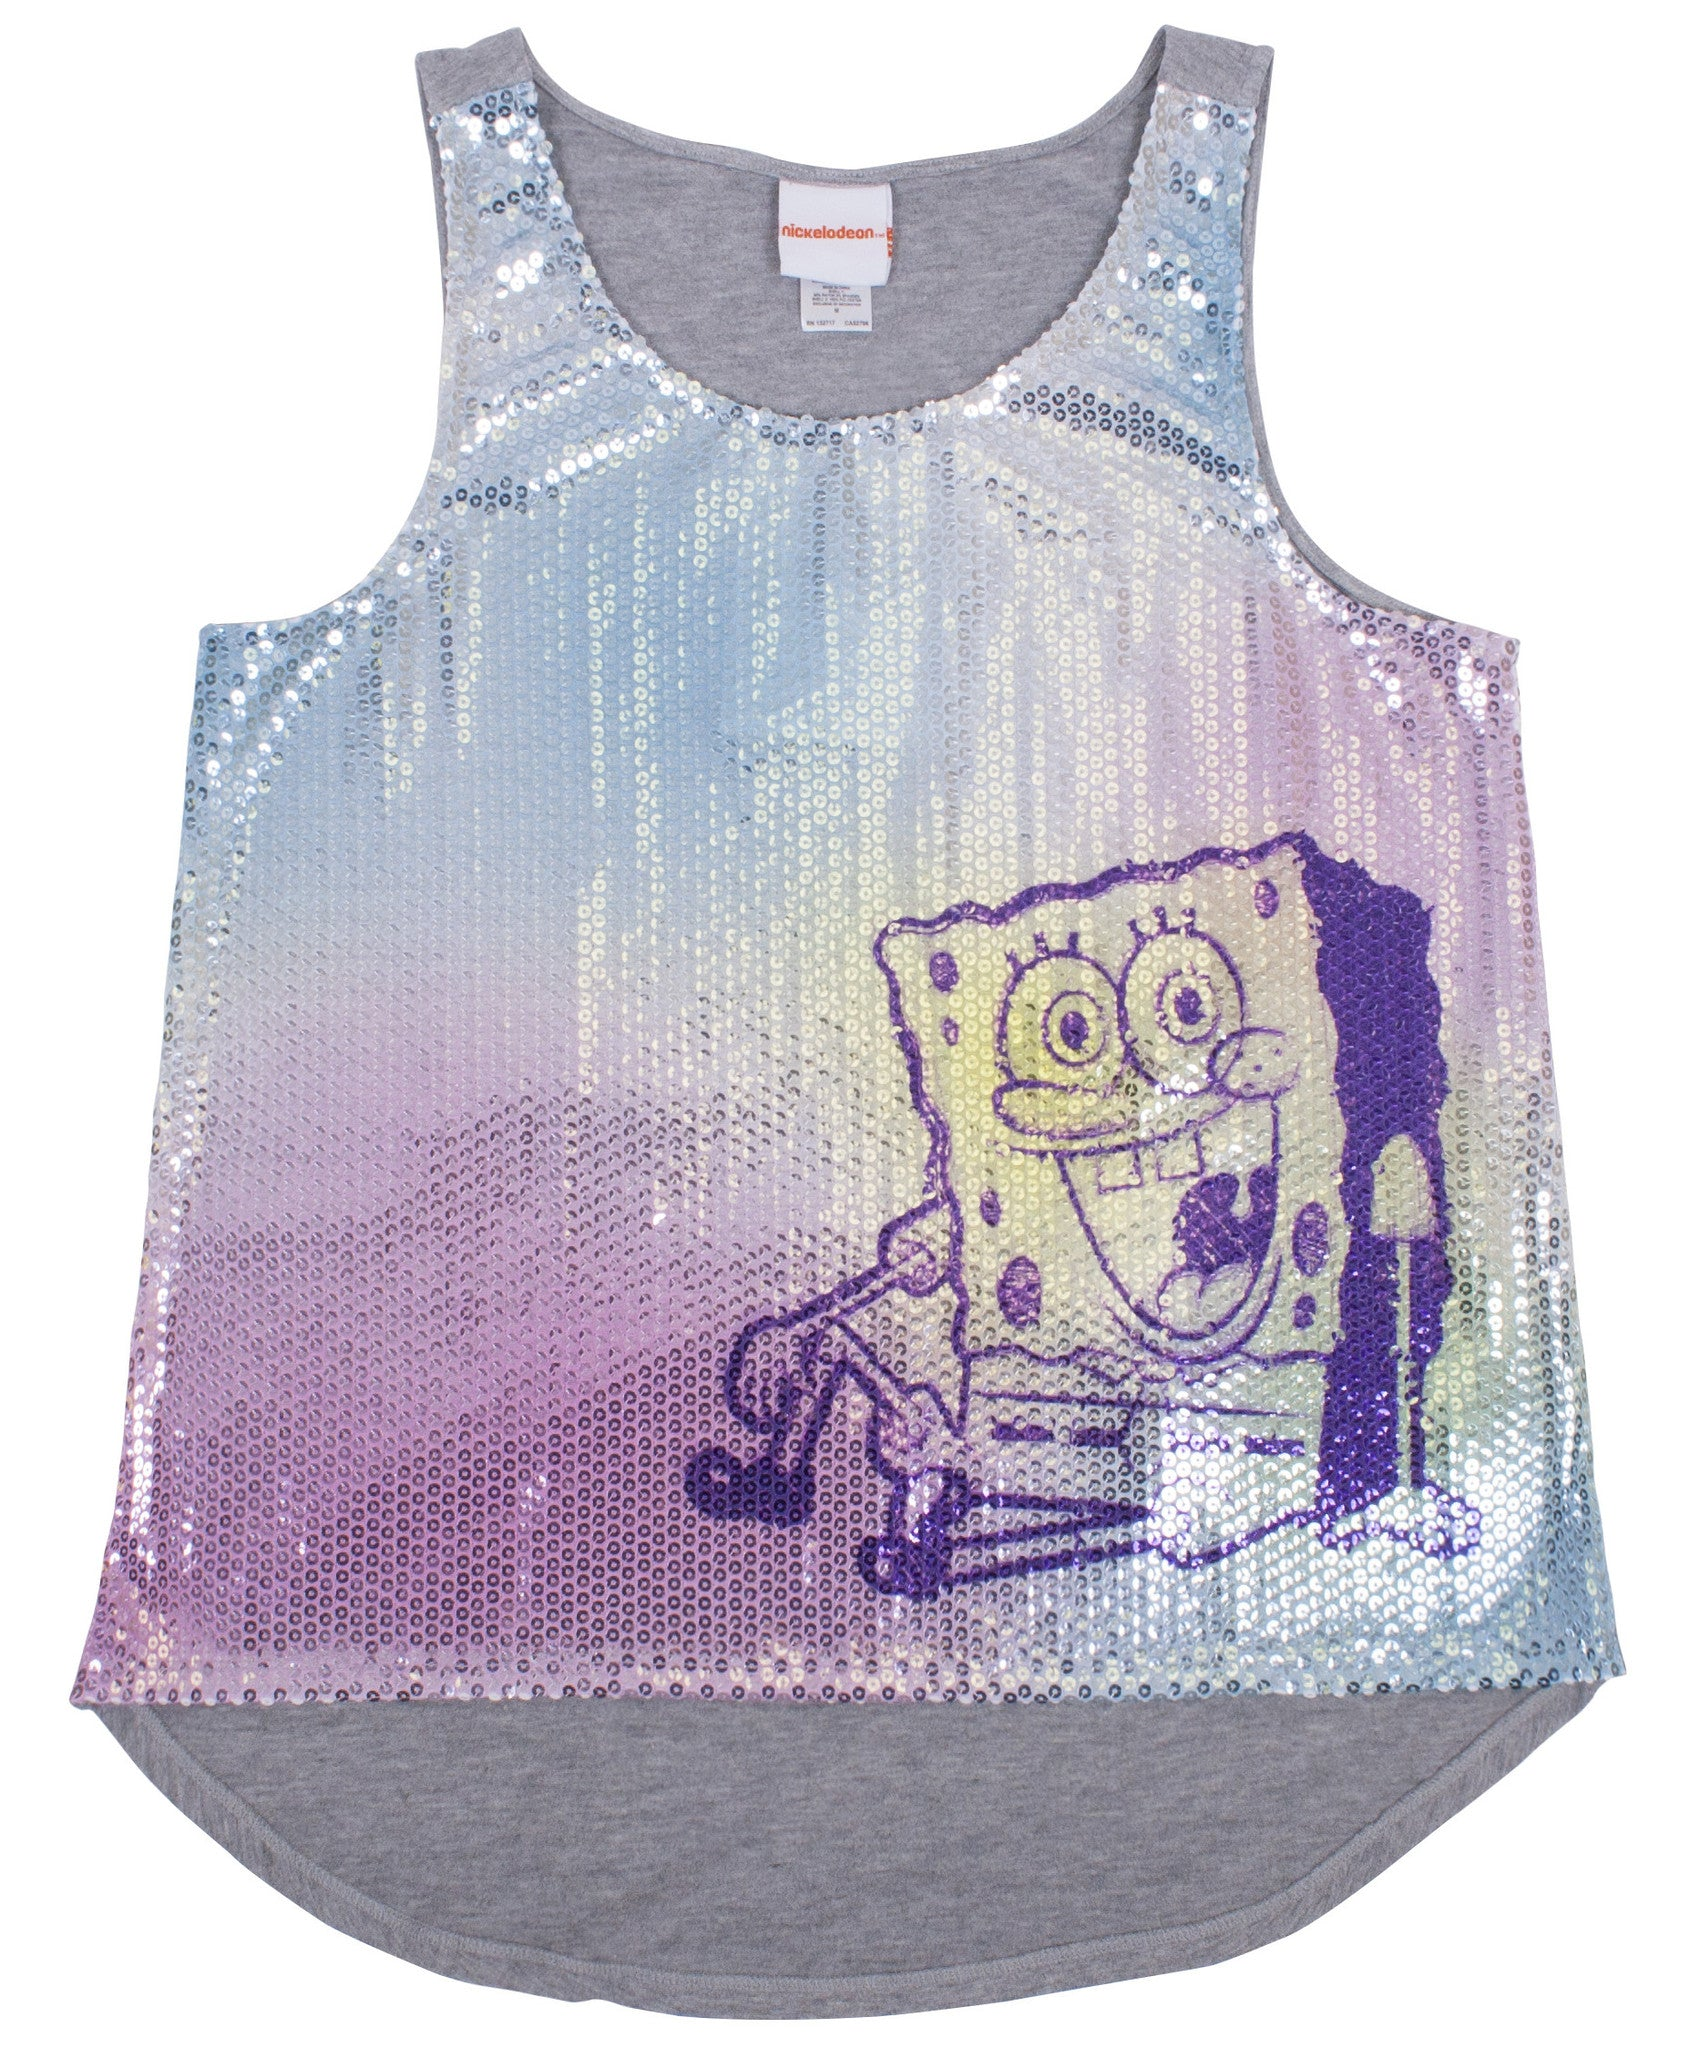 SpongeBob SquarePants Sequin Tank - Junior